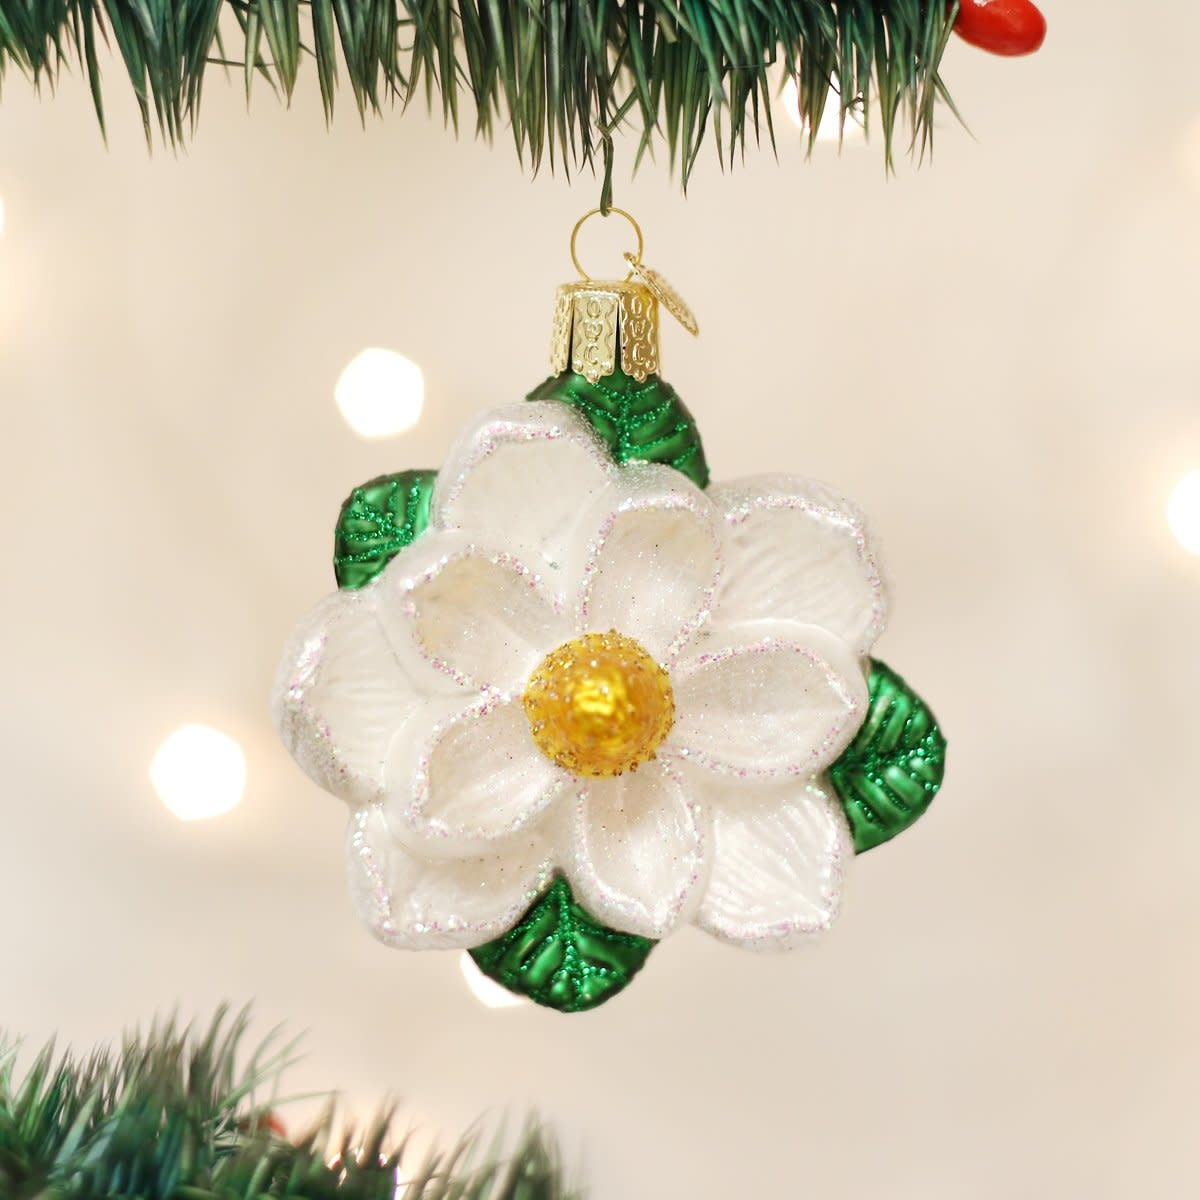 Old World Christmas OWC Magnolia Ornament